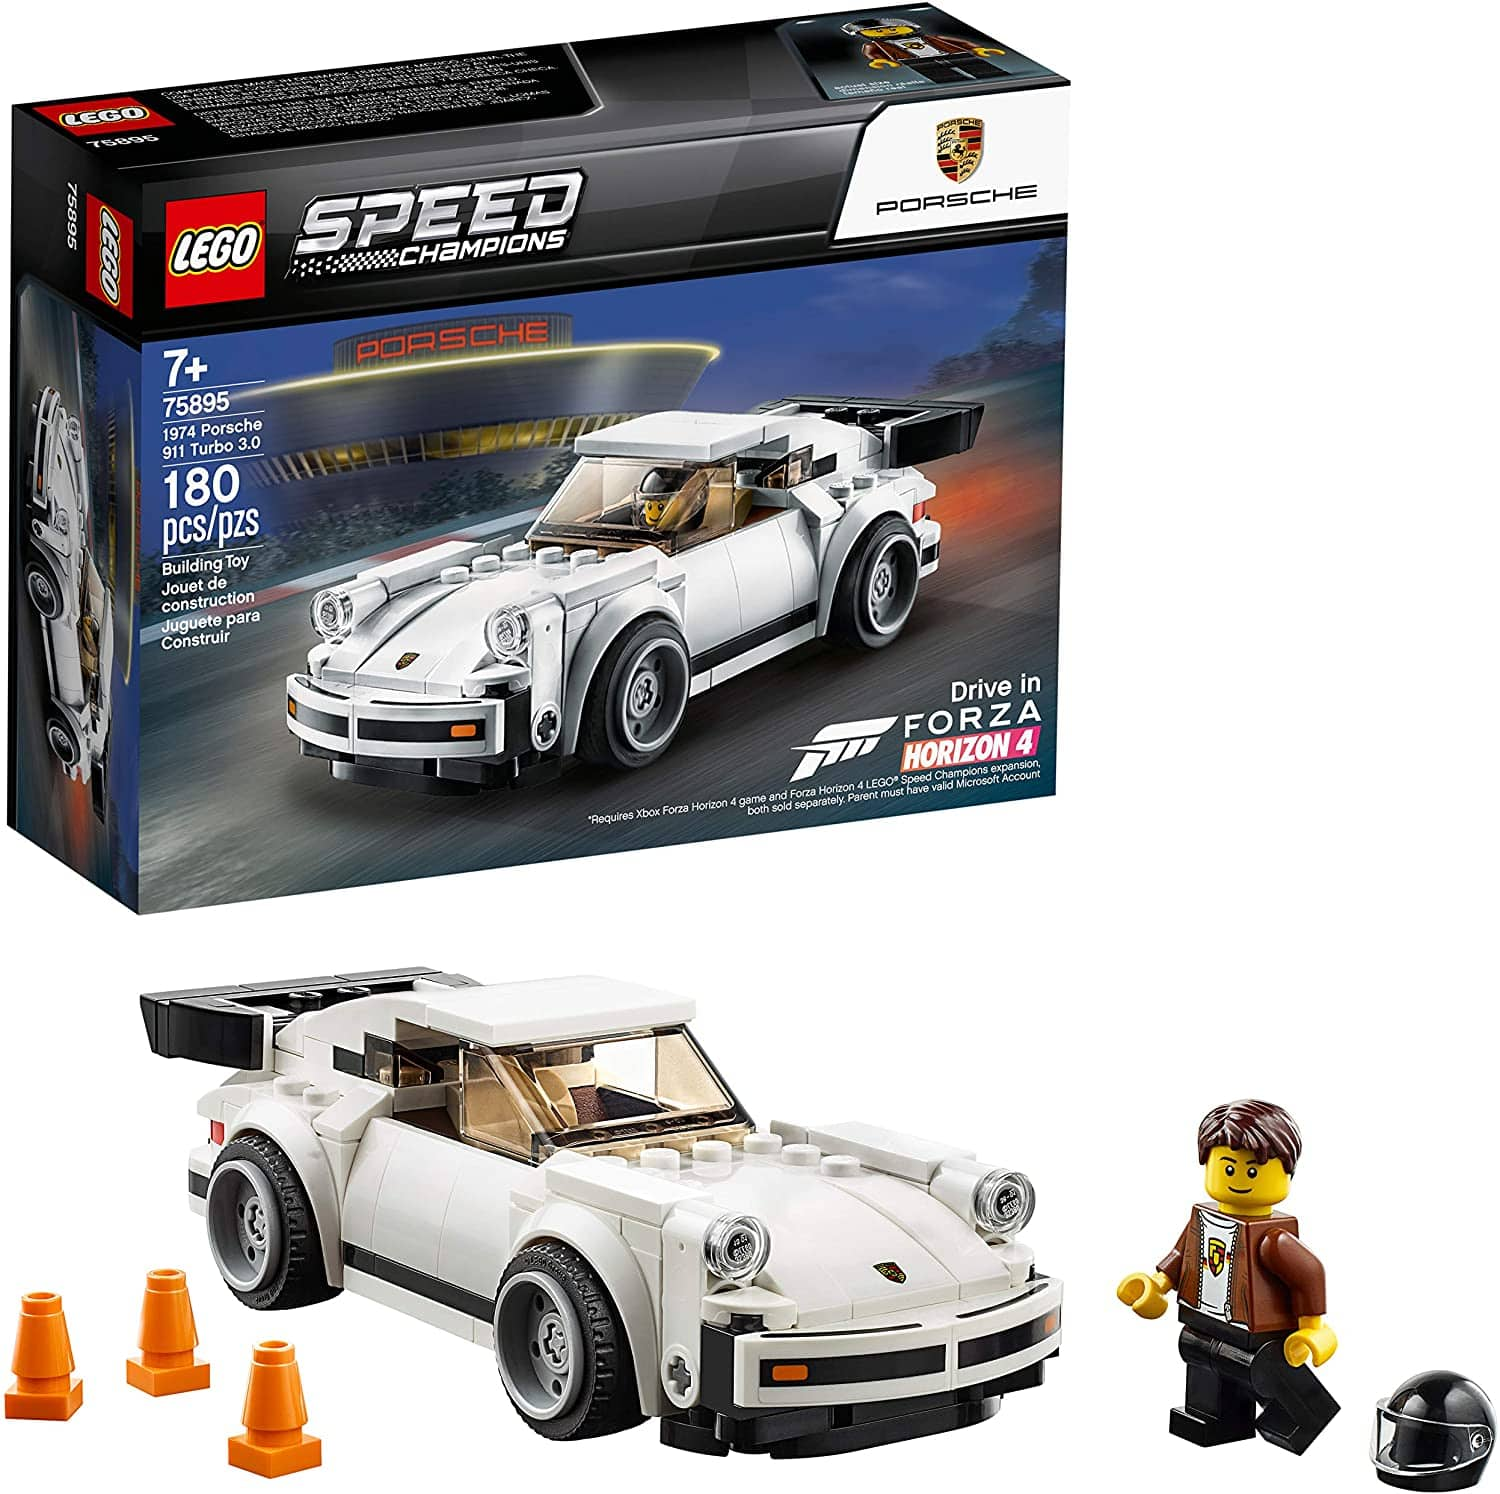 LEGO Speed Champions 1974 Porsche 911 Turbo 3.0 75895 Building Kit (180 Pieces) - Amazon, Walmart - $11.99